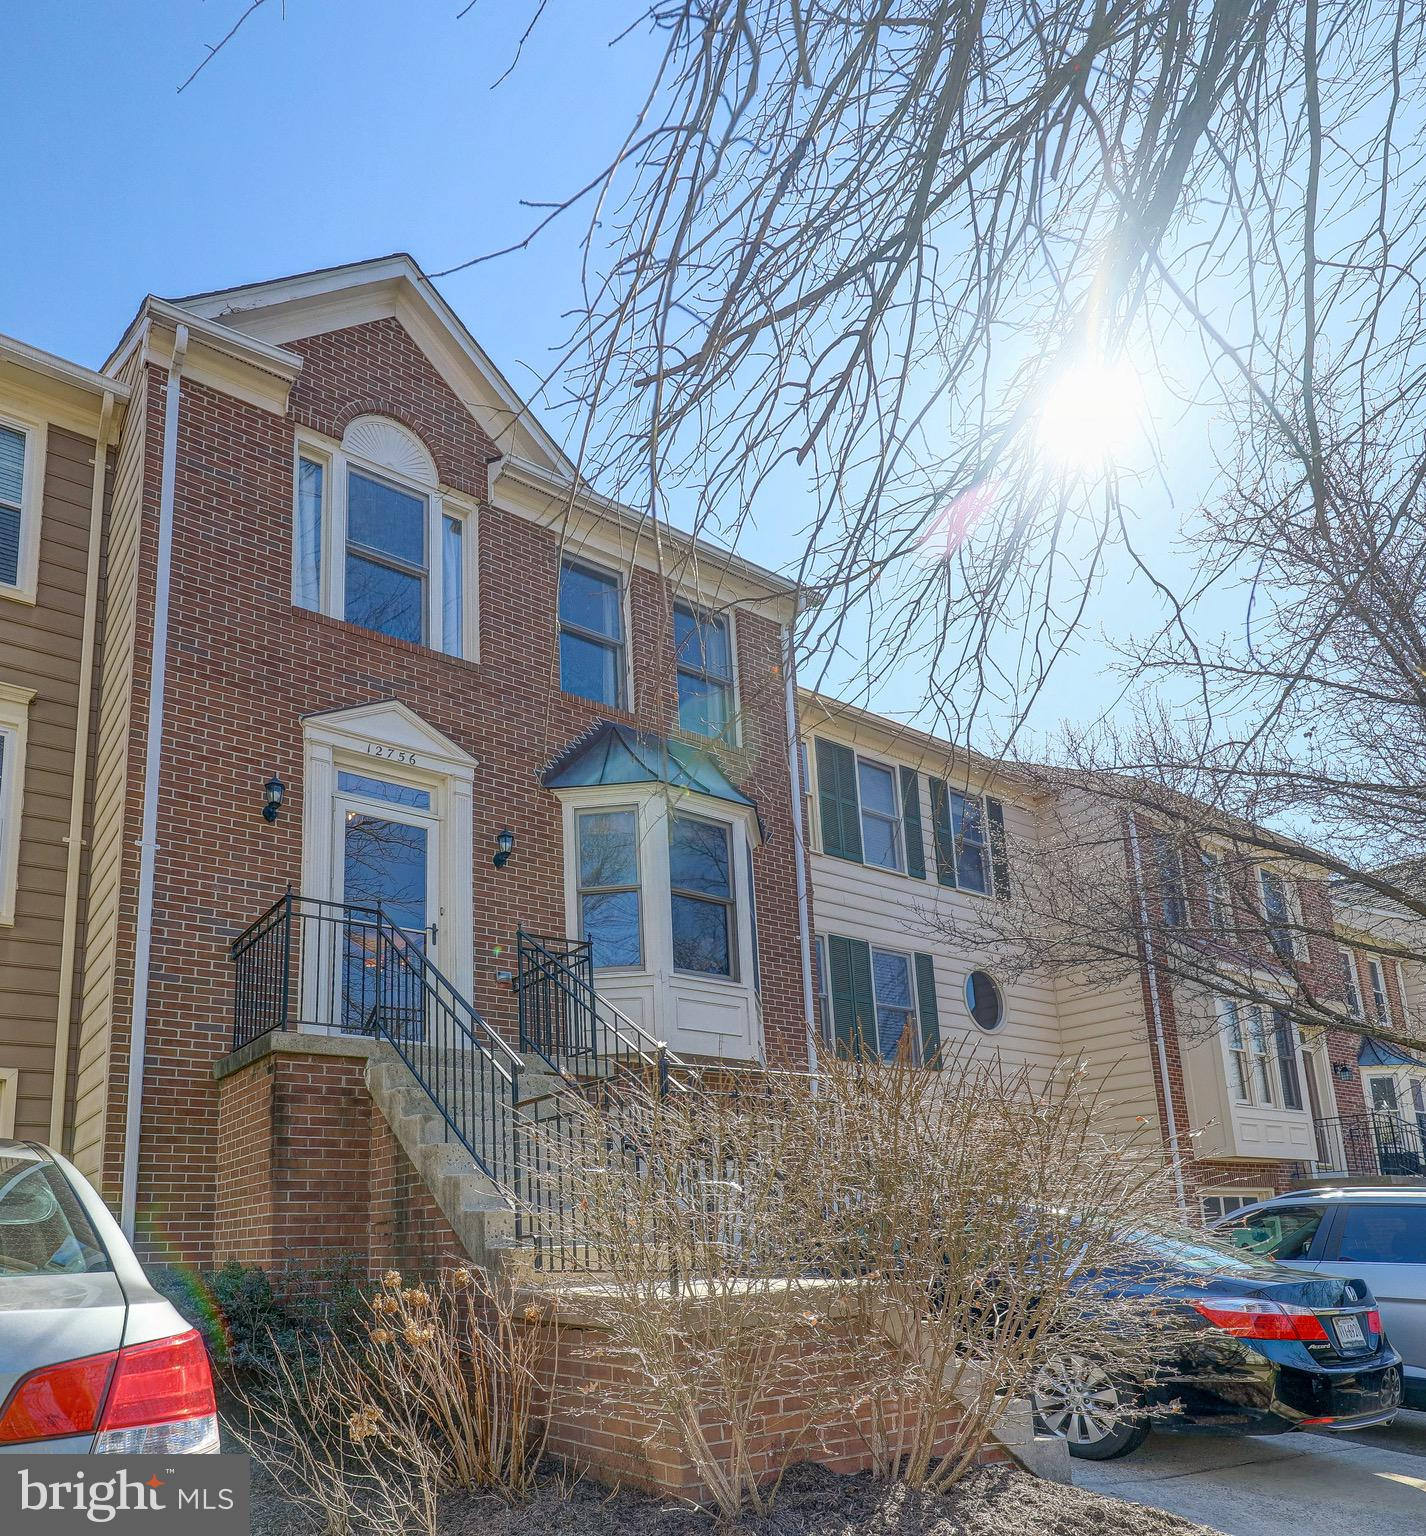 ALL OFFERS DUE BY NOON MONDAY MARCH 8th. Well maintained brick front townhouse in much sought after